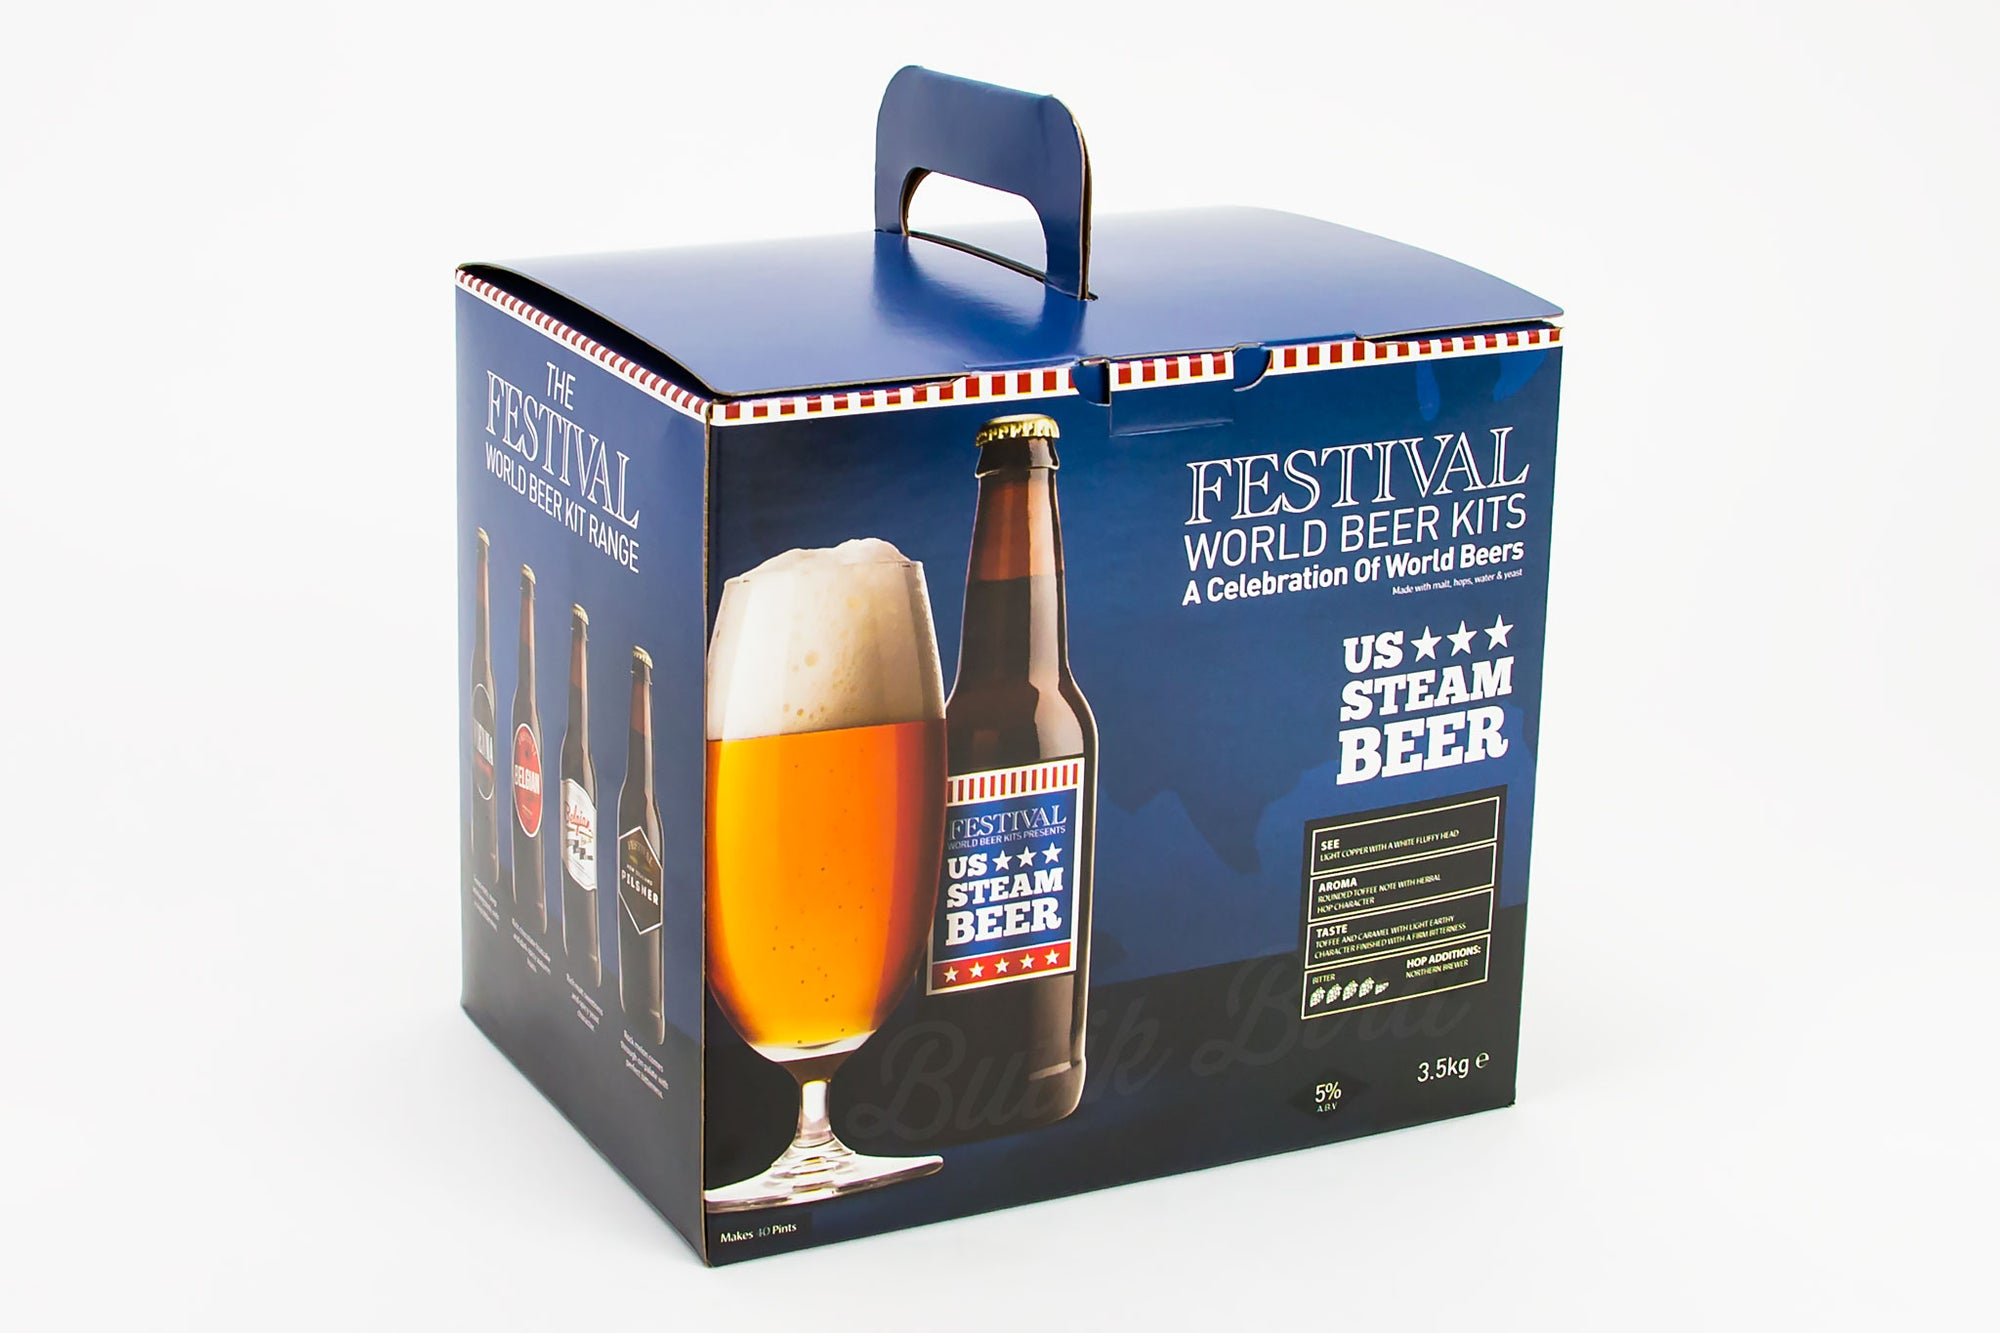 Amerikan Steam Bira Kiti - Festival US Steam Beer - Butik Bira